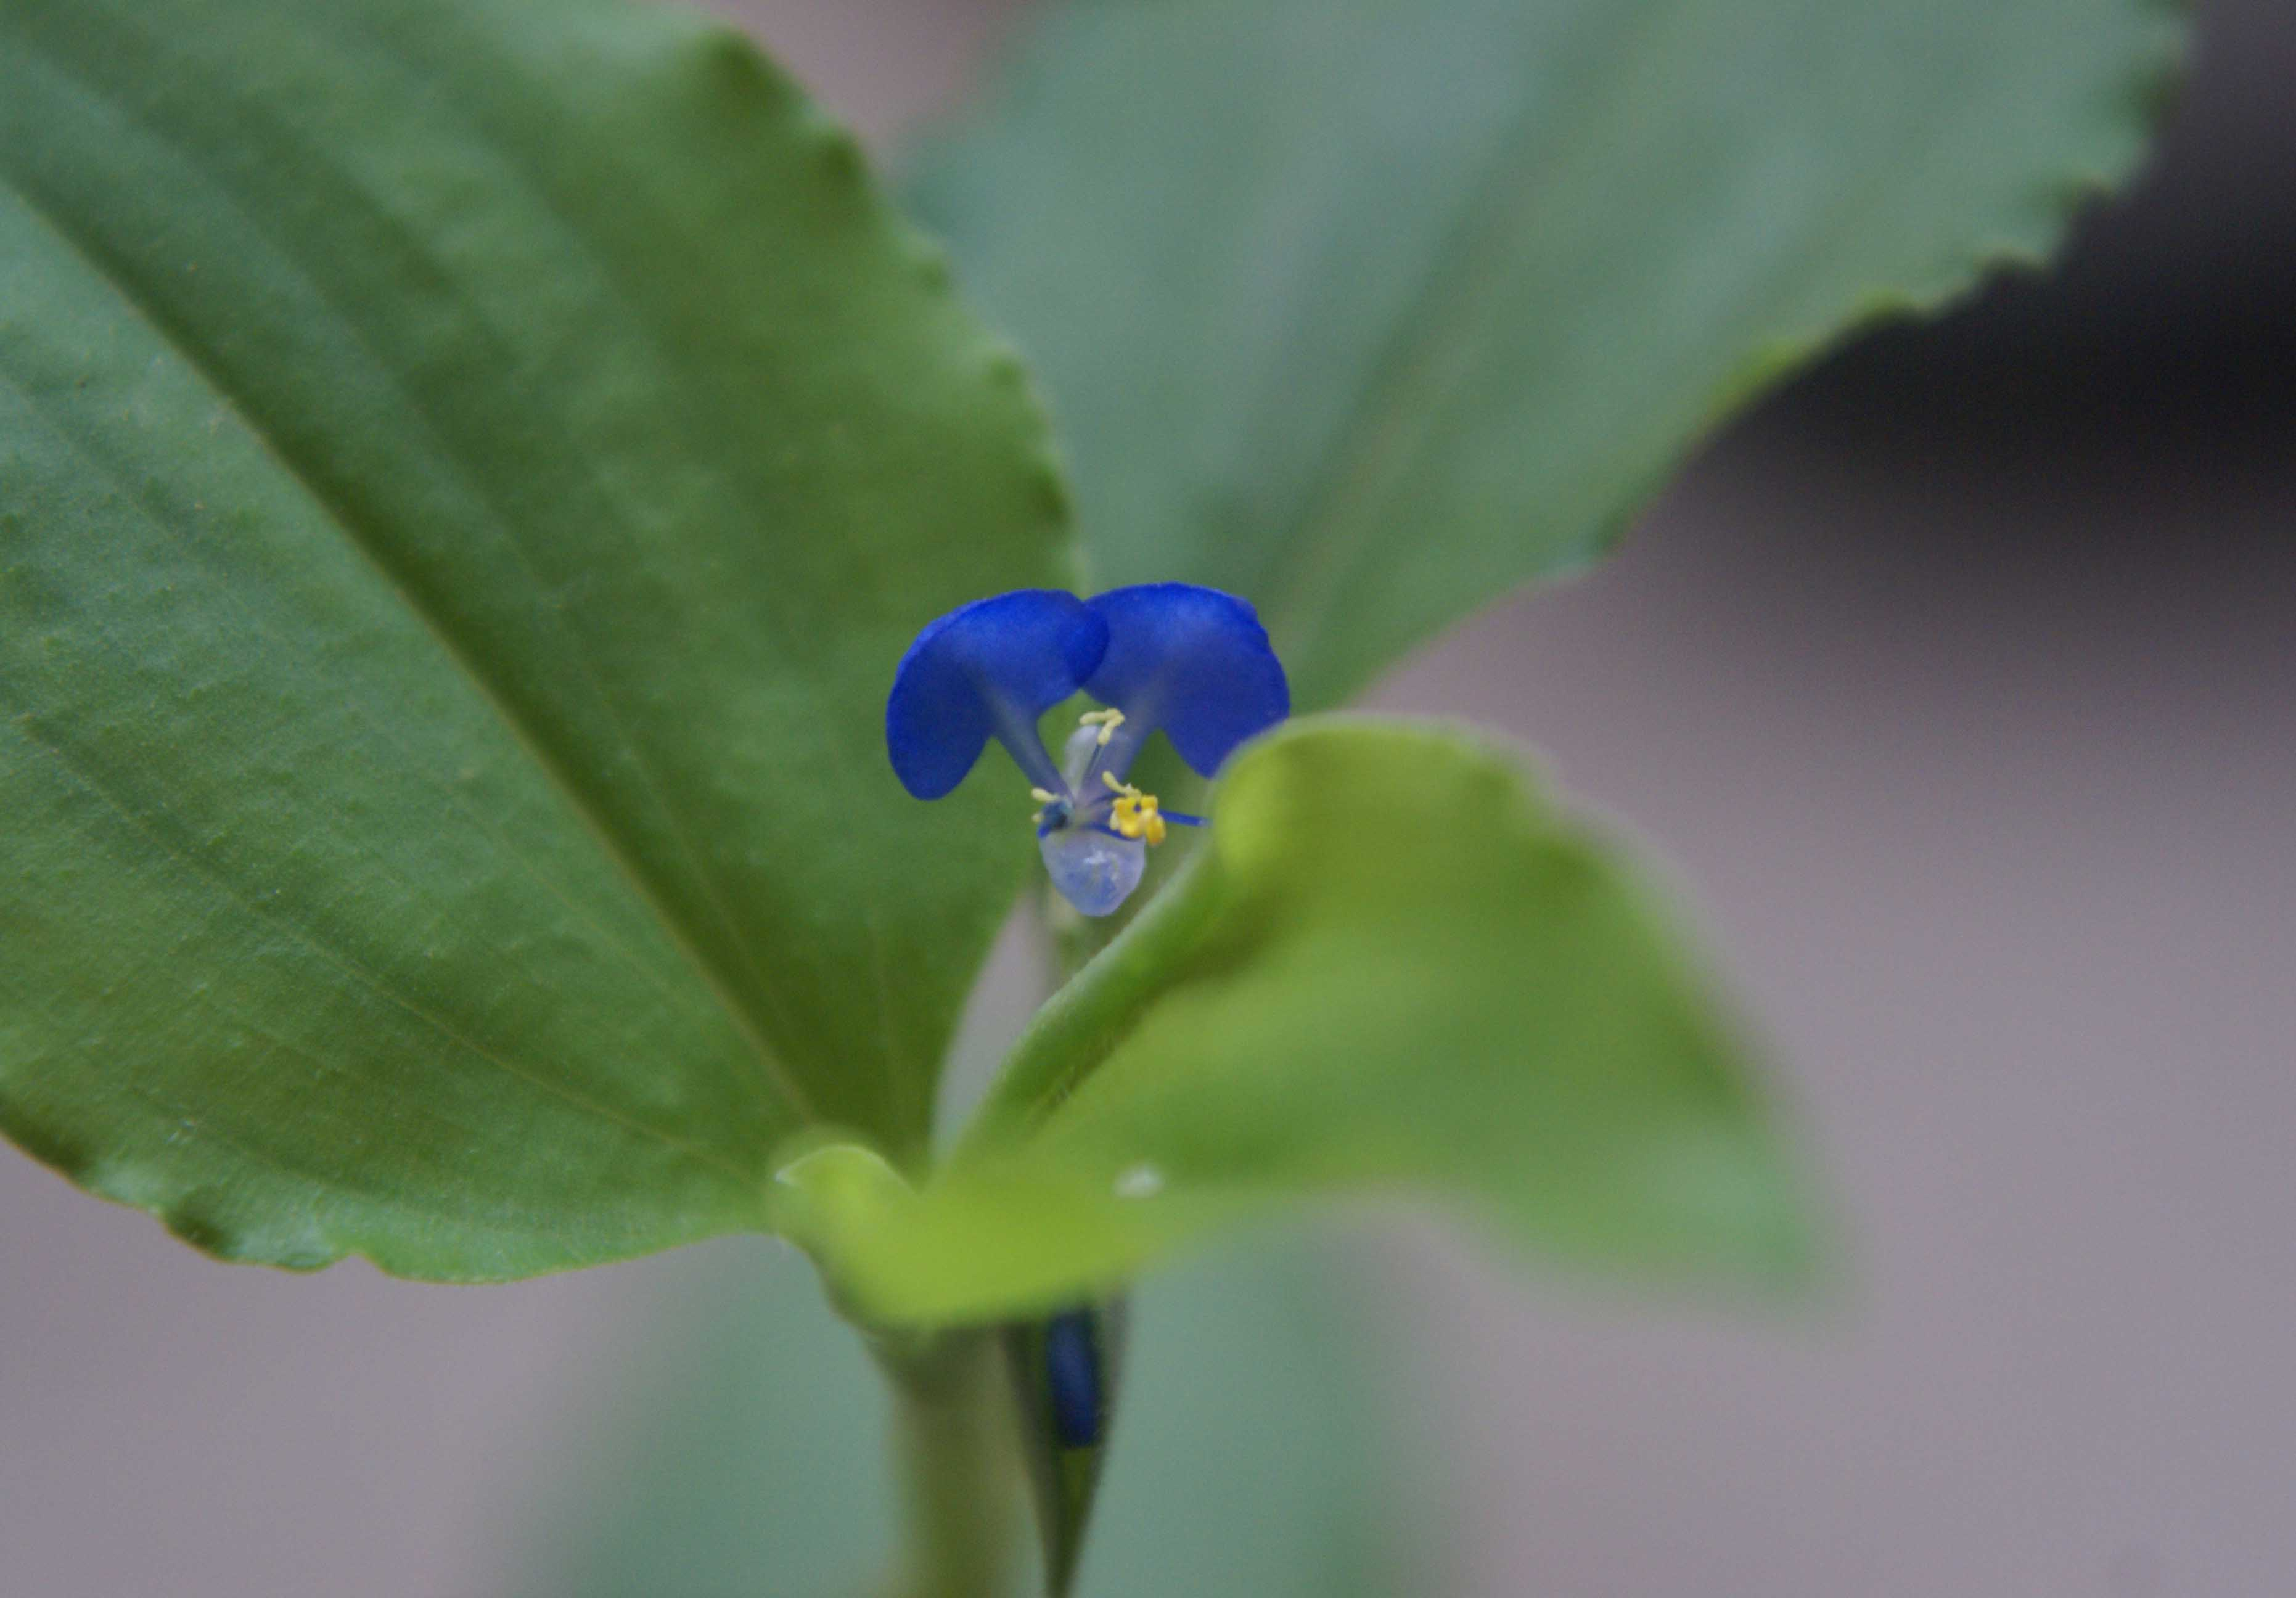 /wp-content/uploads/2020/10/Commelina-benghalensis-6.jpg